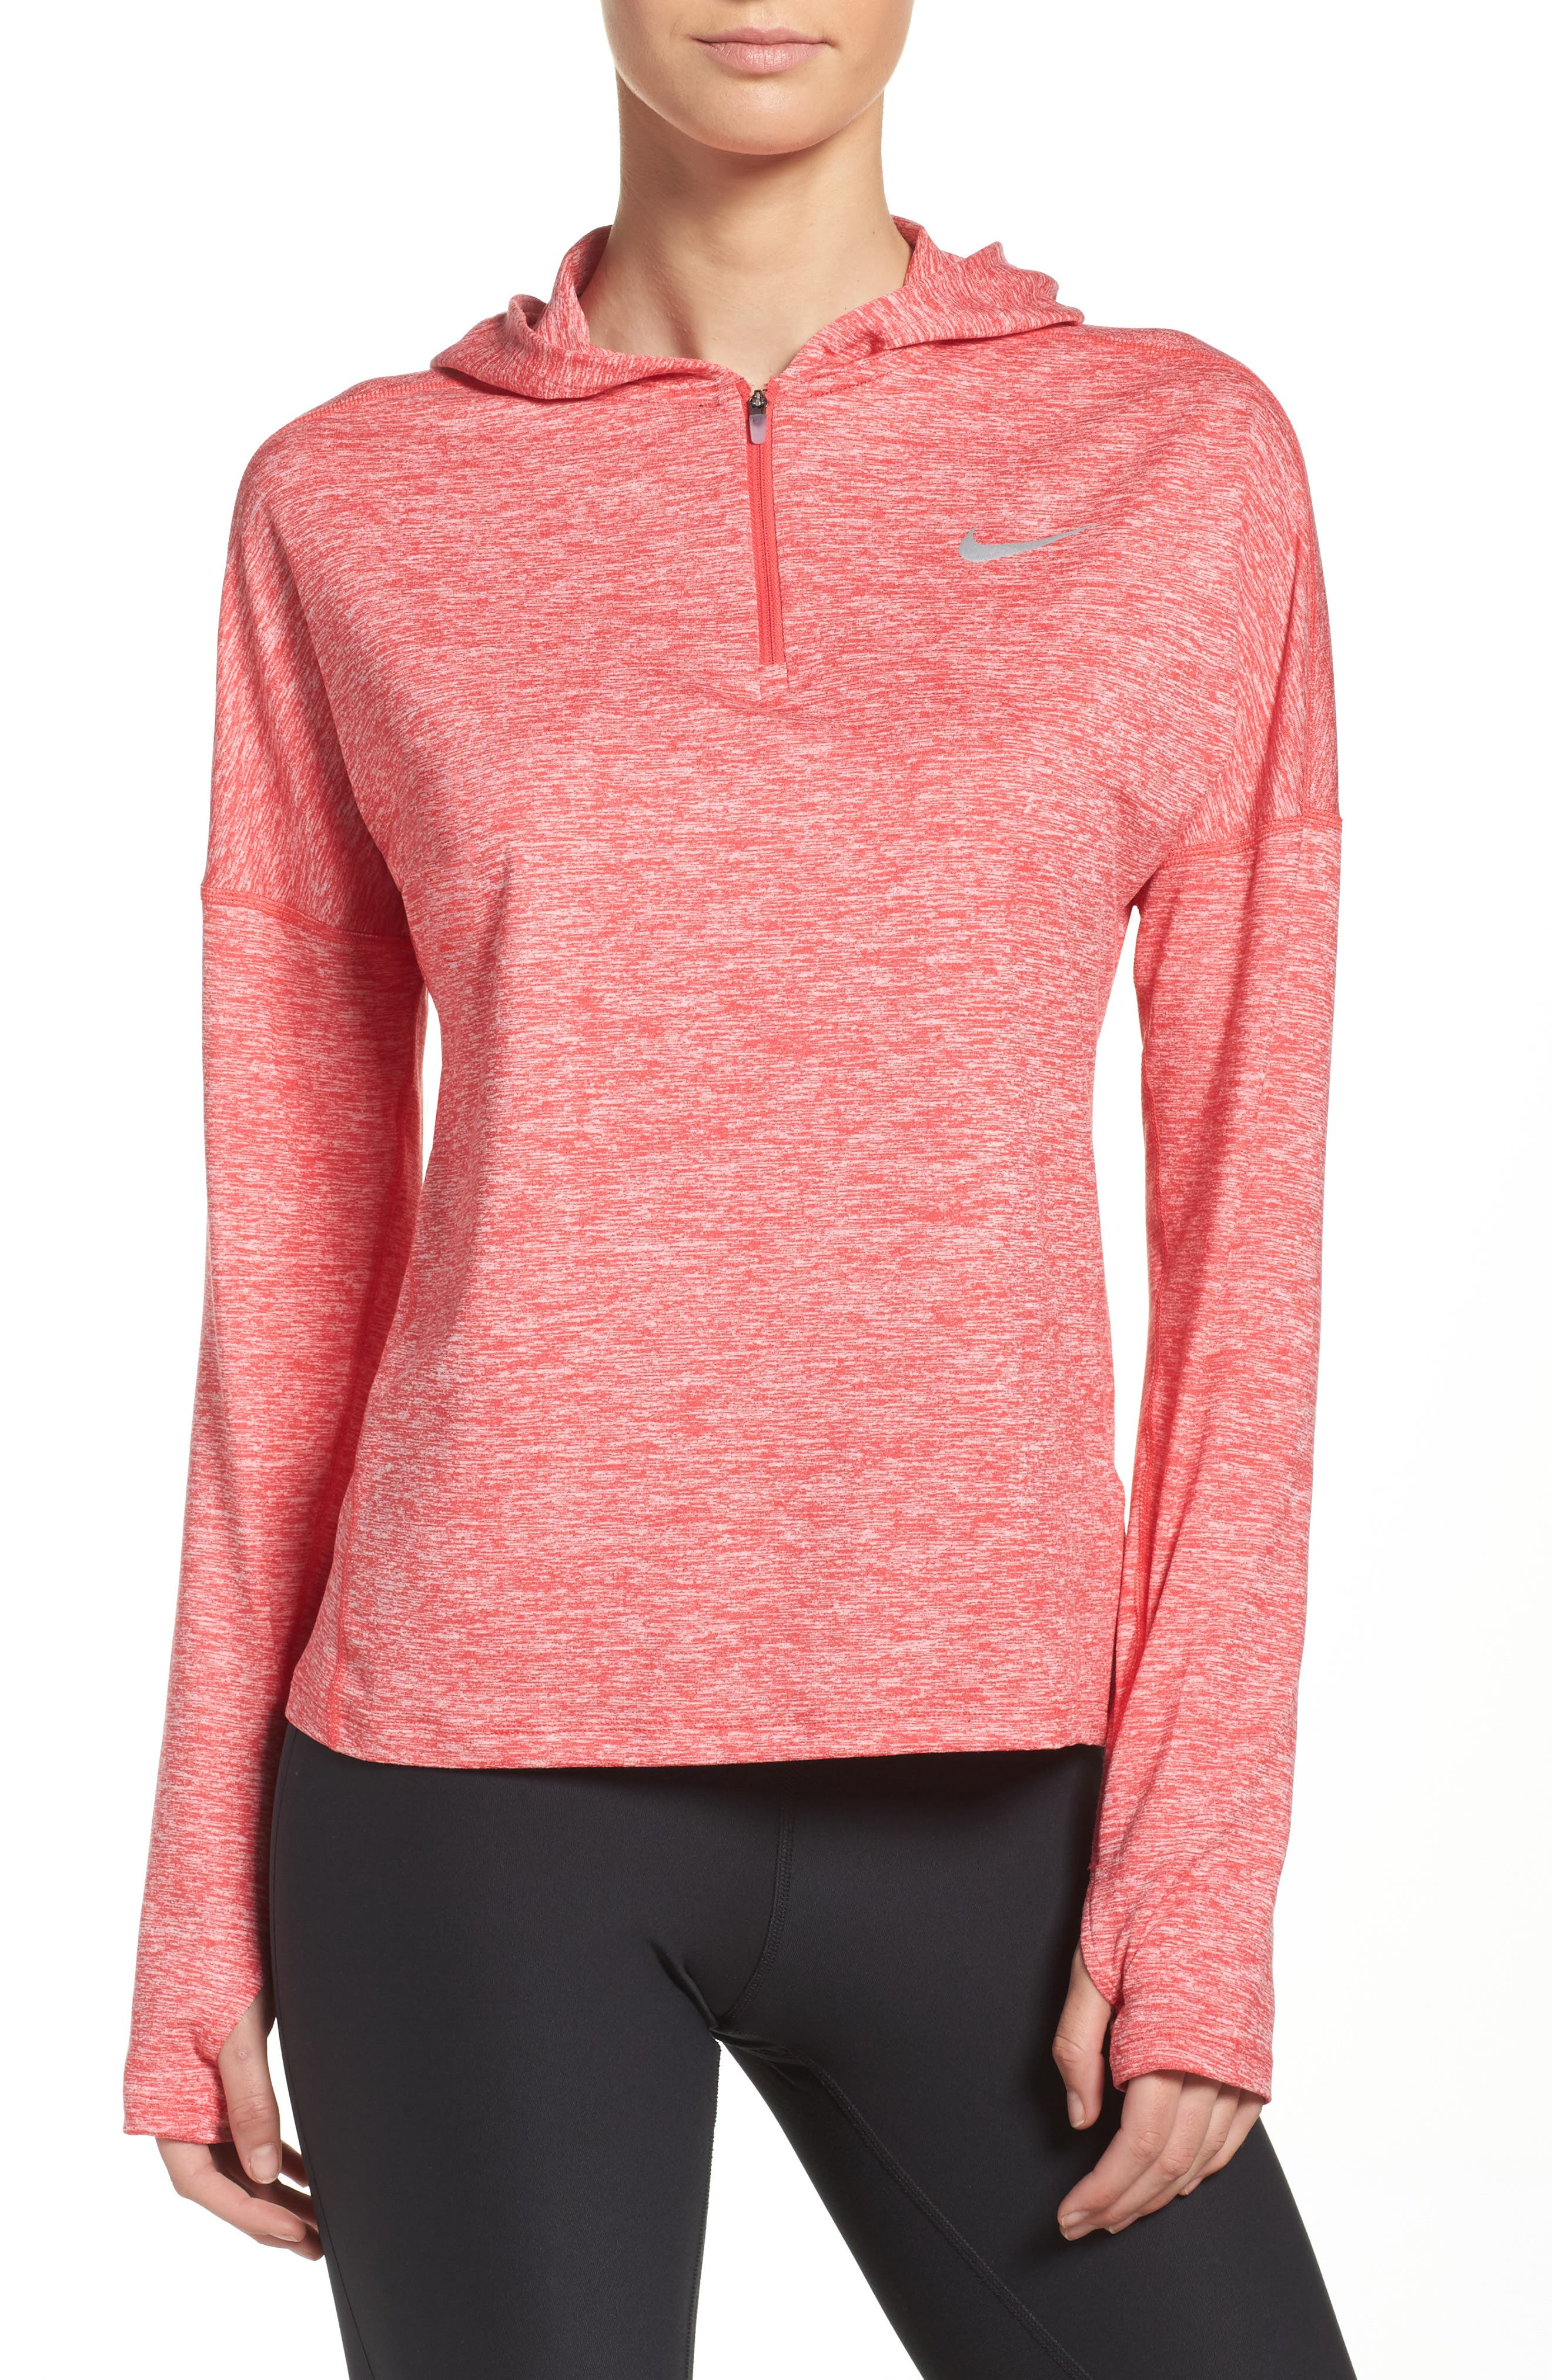 Dry Element Running Hoodie,                         Main,                         color, Light Fusion Red/ Heather